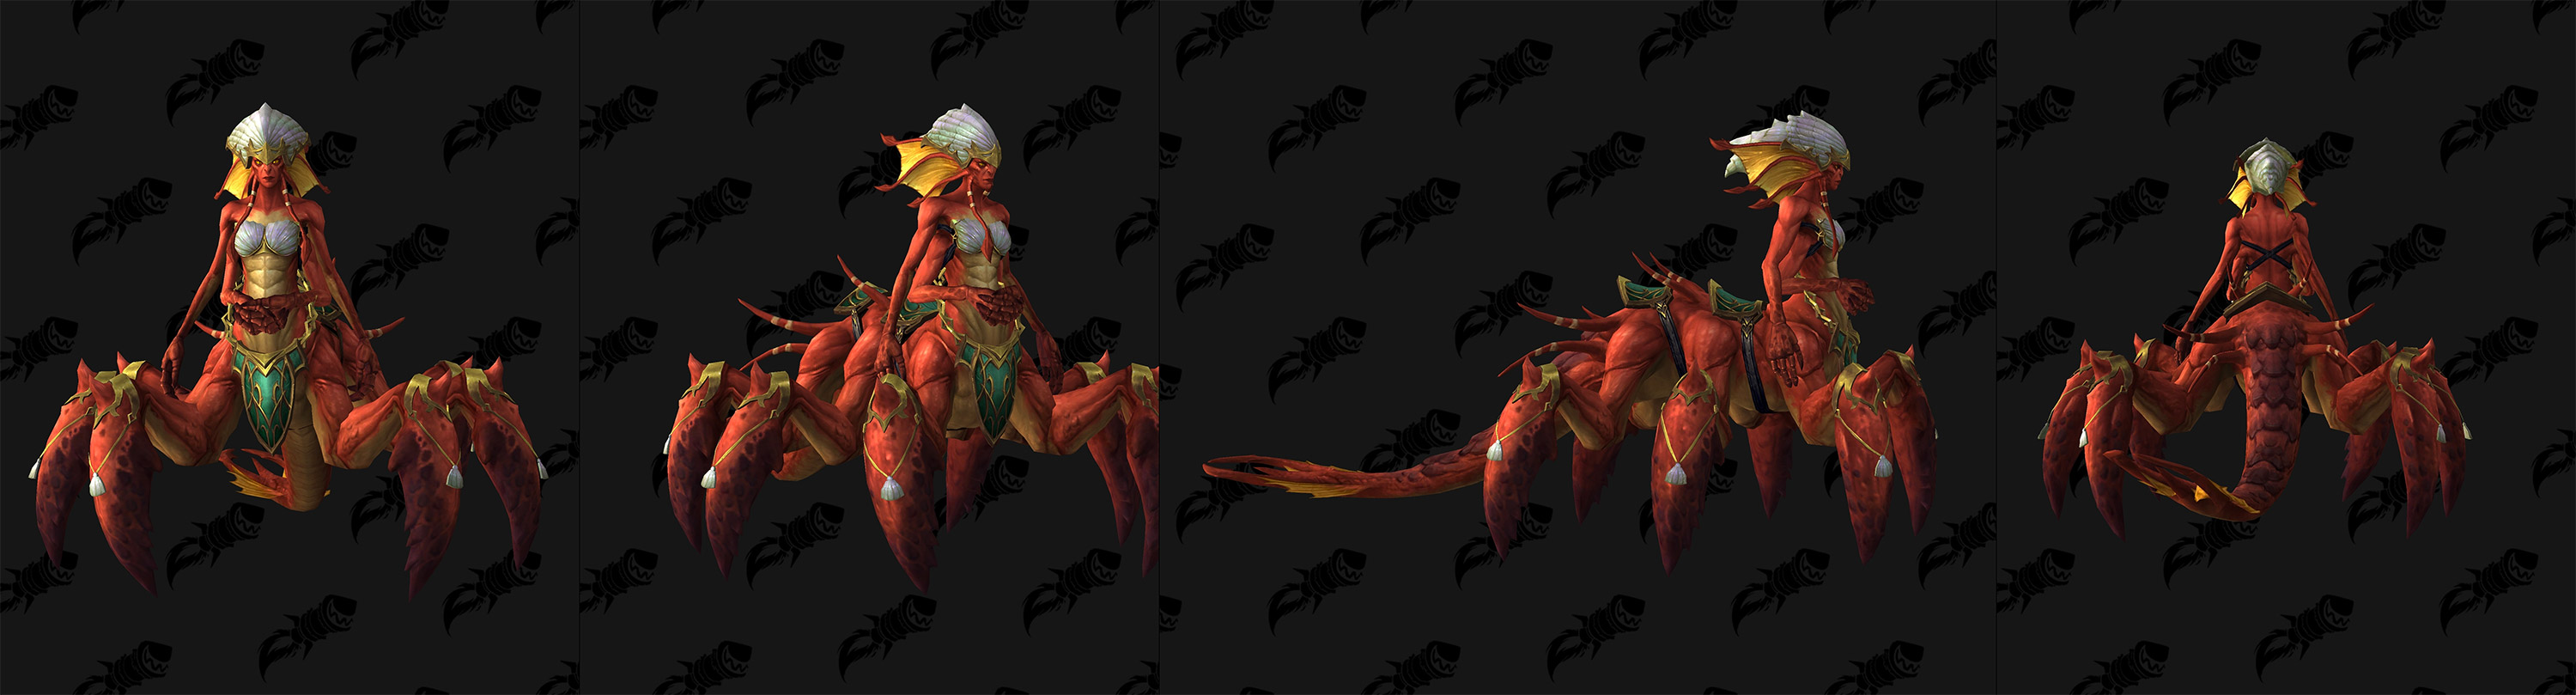 Modèle de boss naga au patch 8.2